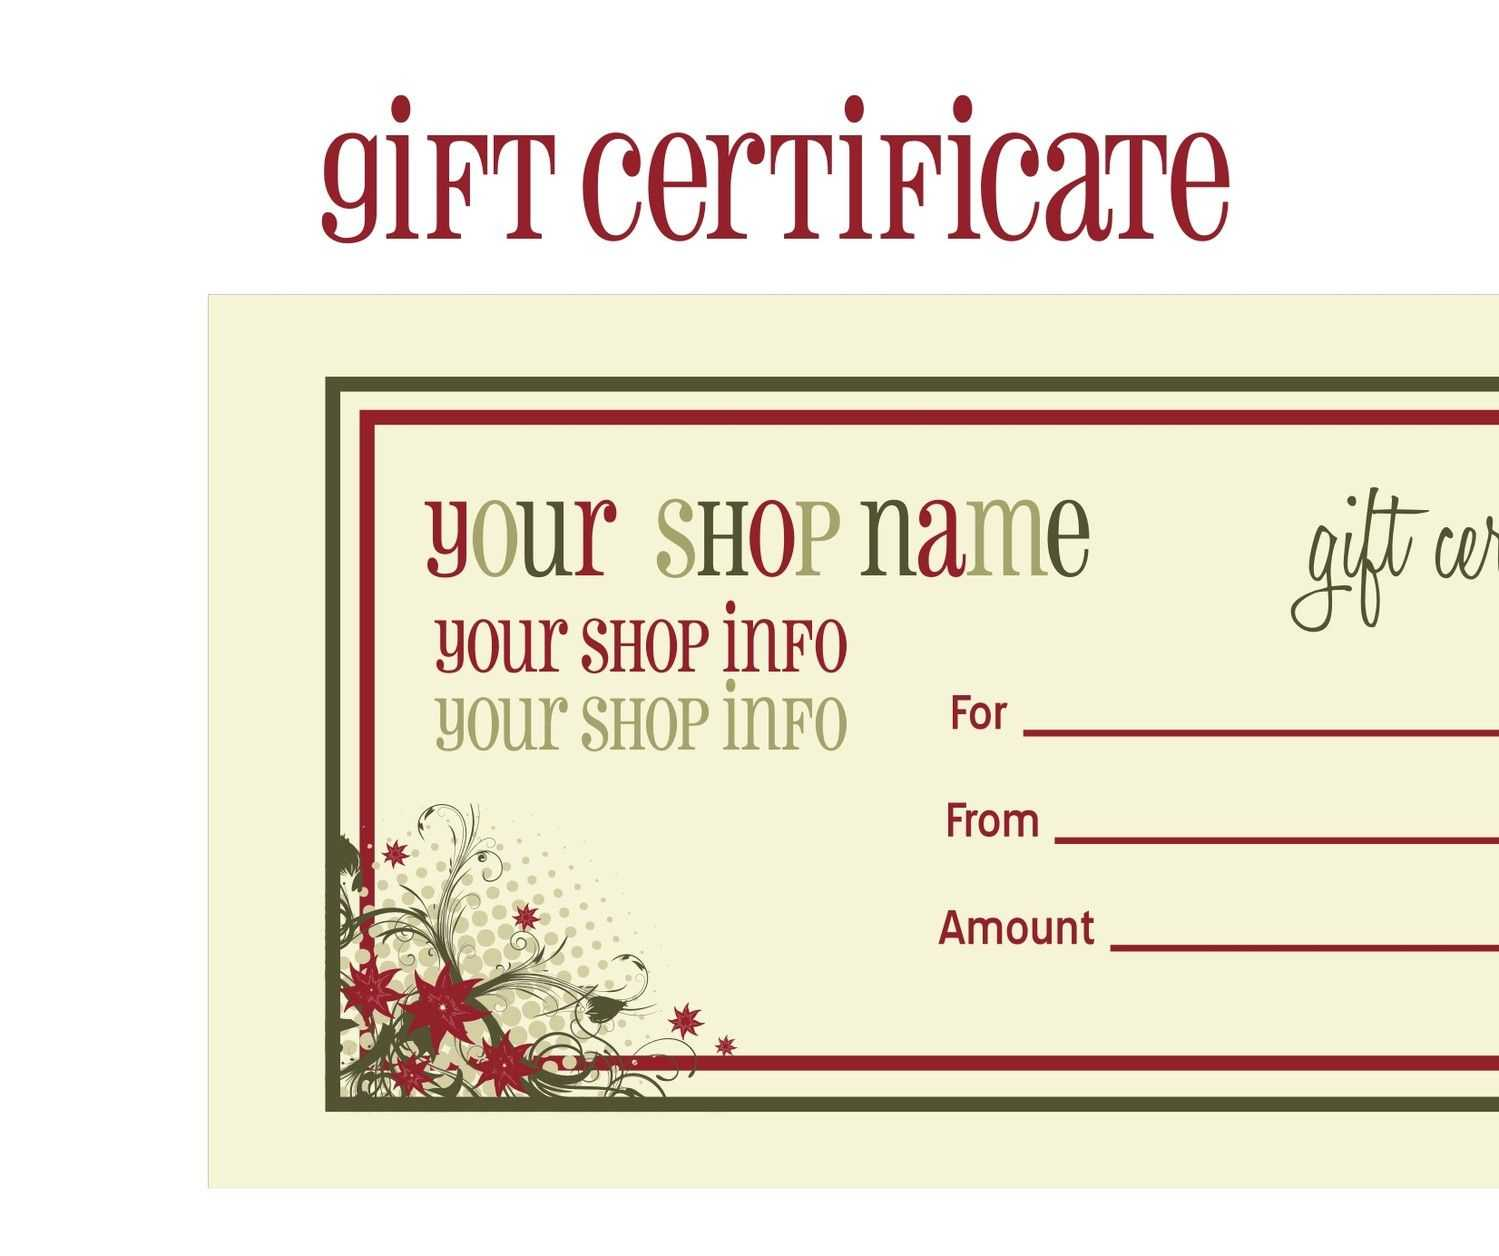 014 Template Ideas For Gift Unique Certificate Free Massage Intended For Homemade Gift Certificate Template